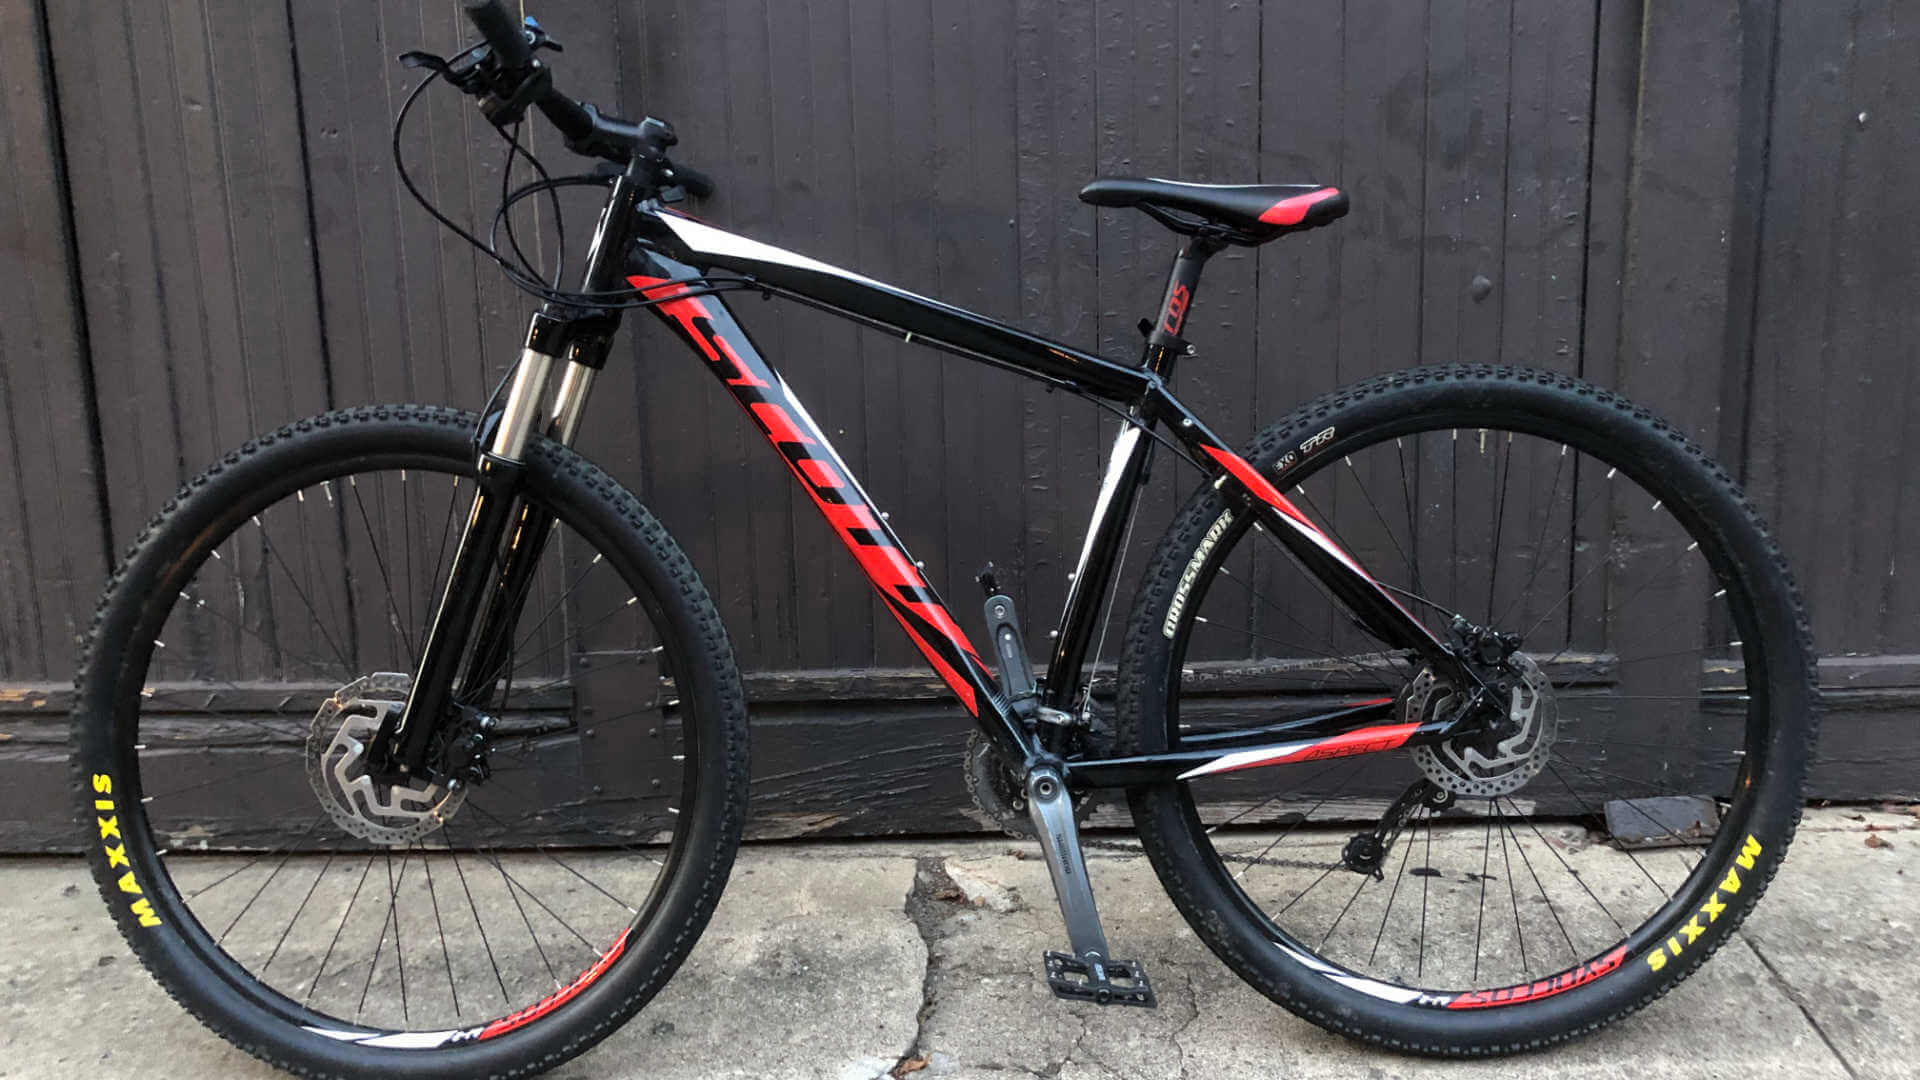 New to Chris Scott Aspect 930 29er Mountain Bike!